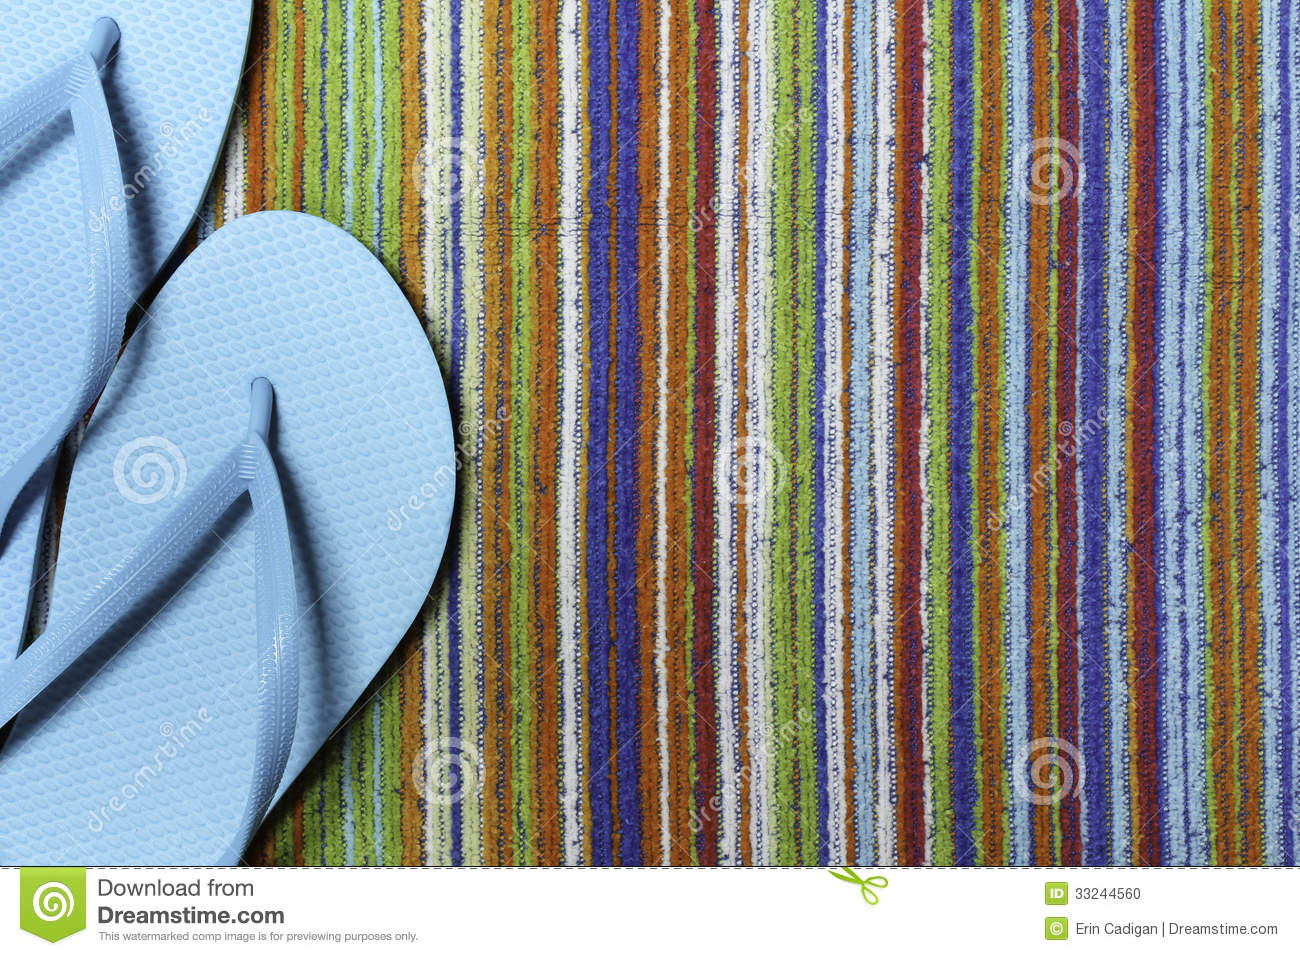 Teal Flip Flops and Colorful Beach Towel